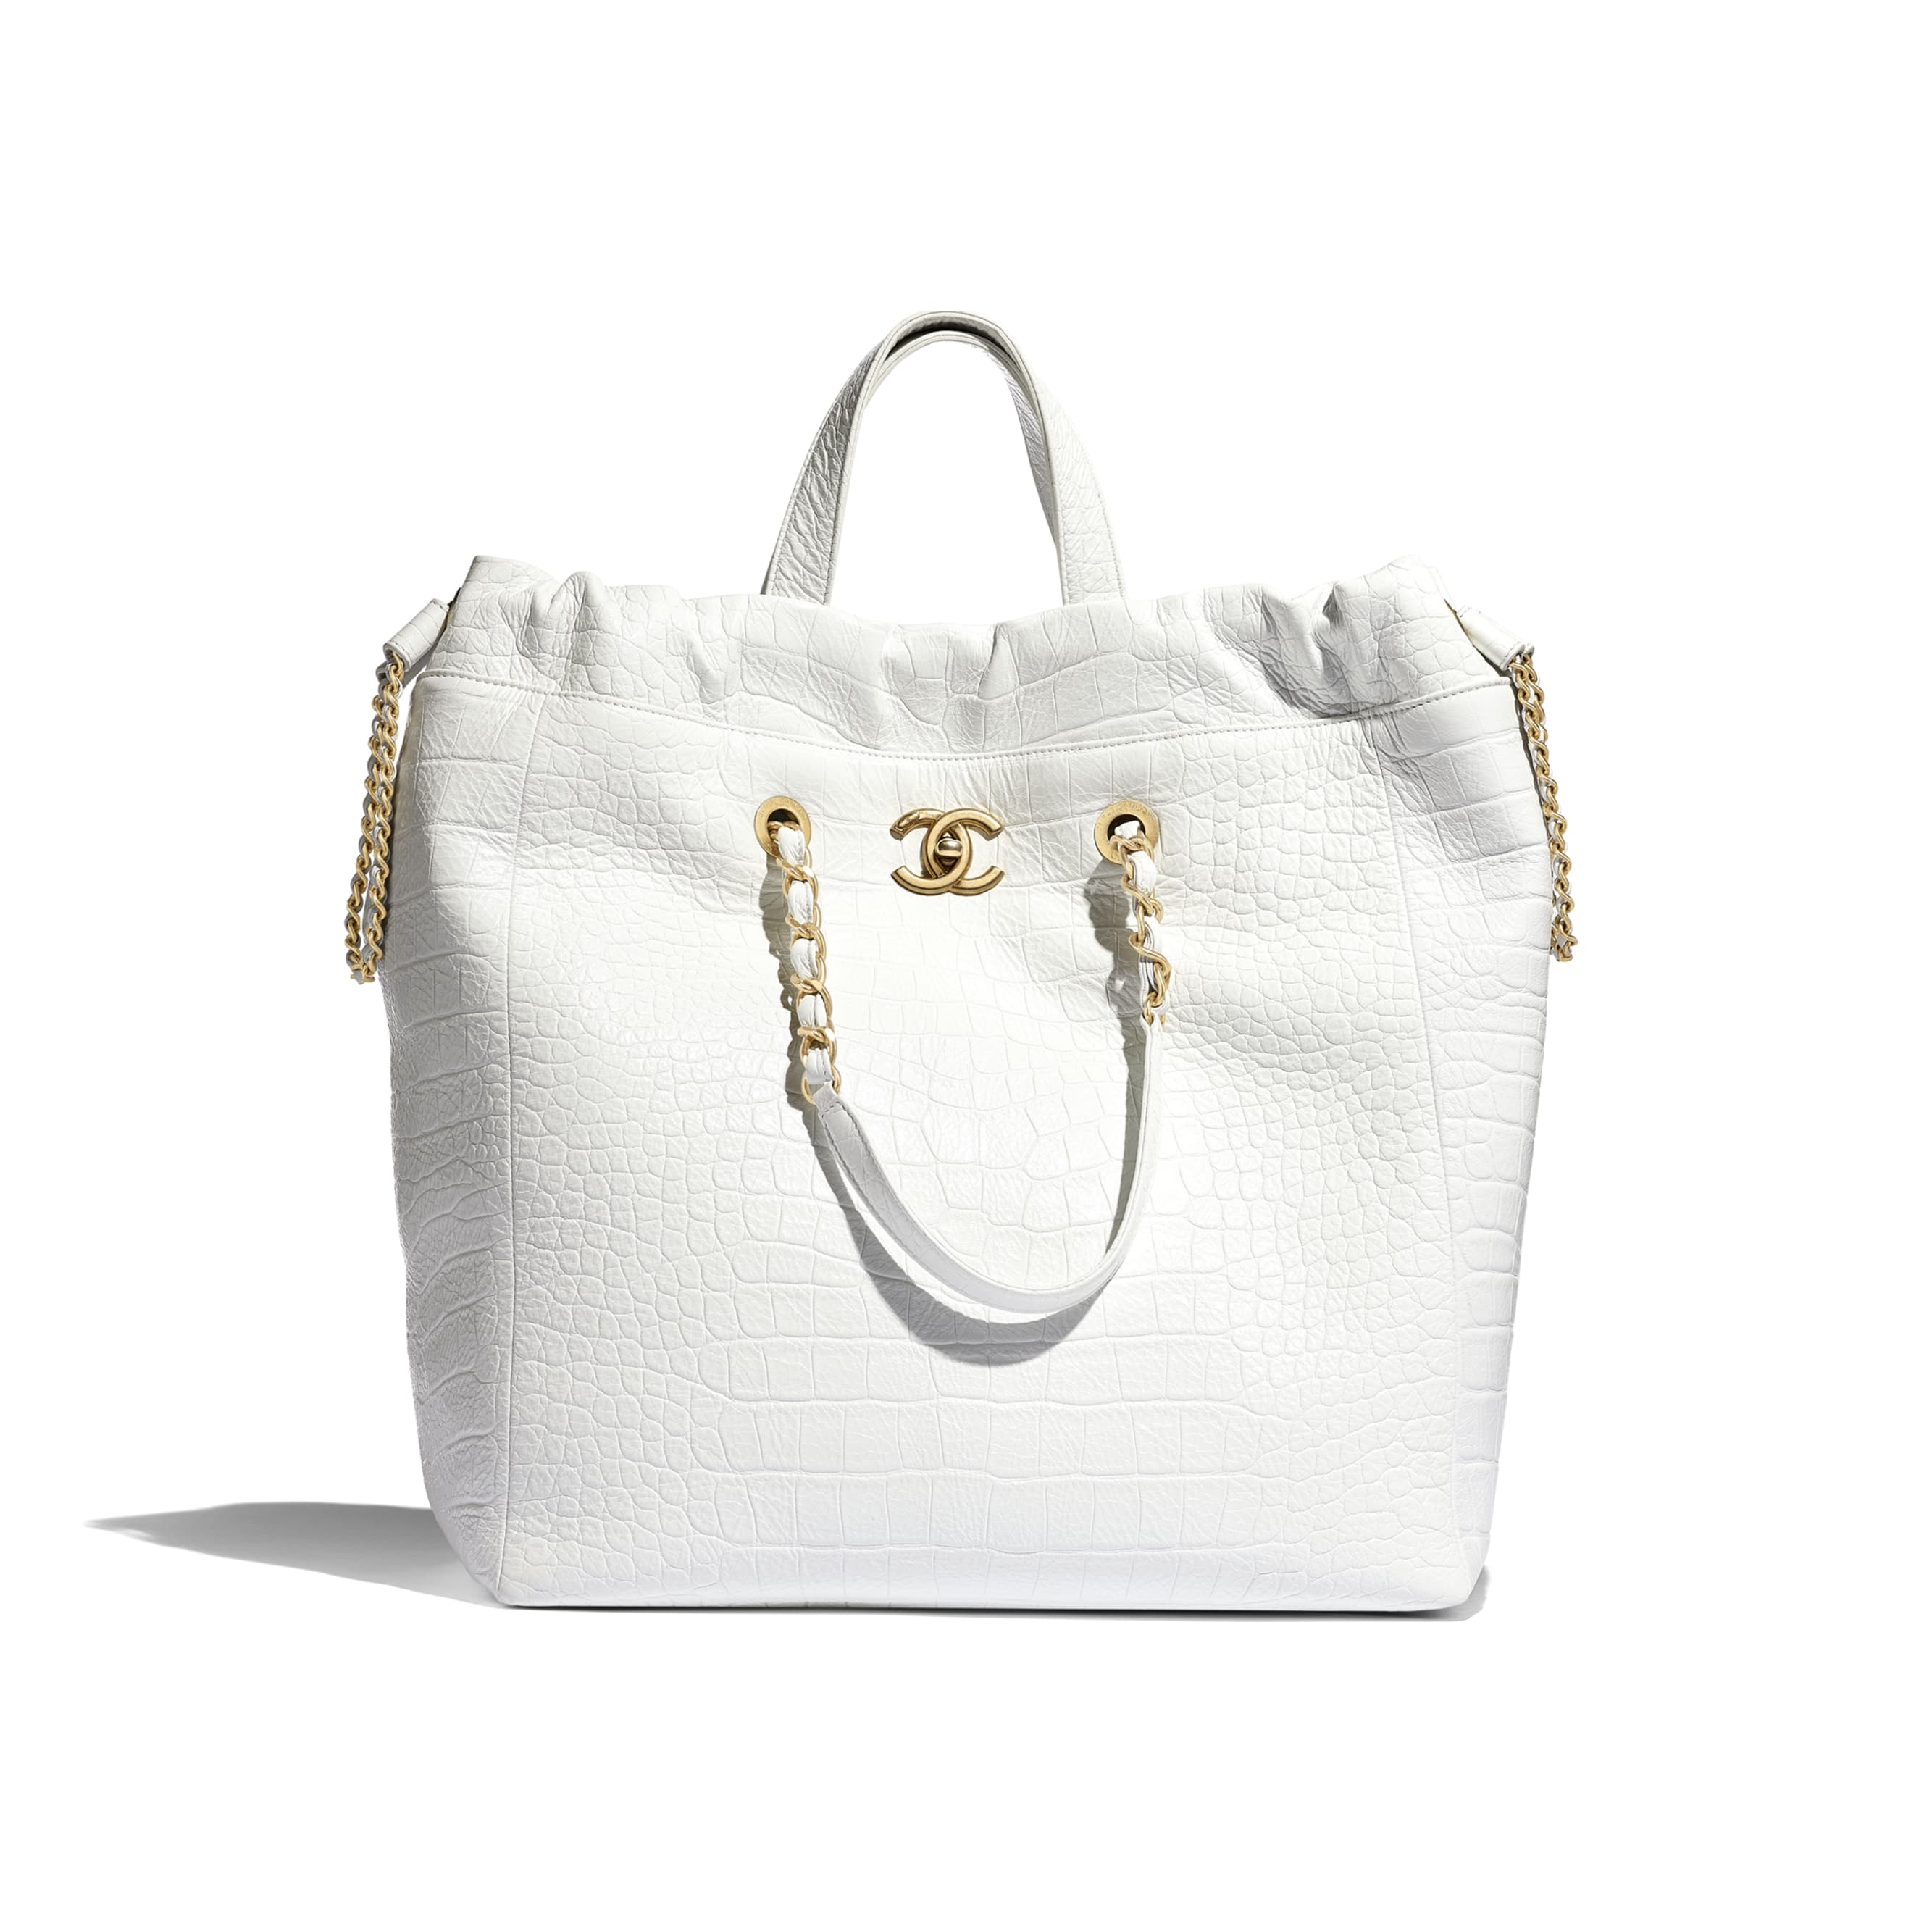 Large Shopping Bag - White - Crocodile Embossed Printed Leather & Gold-Tone Metal - Default view - see standard sized version